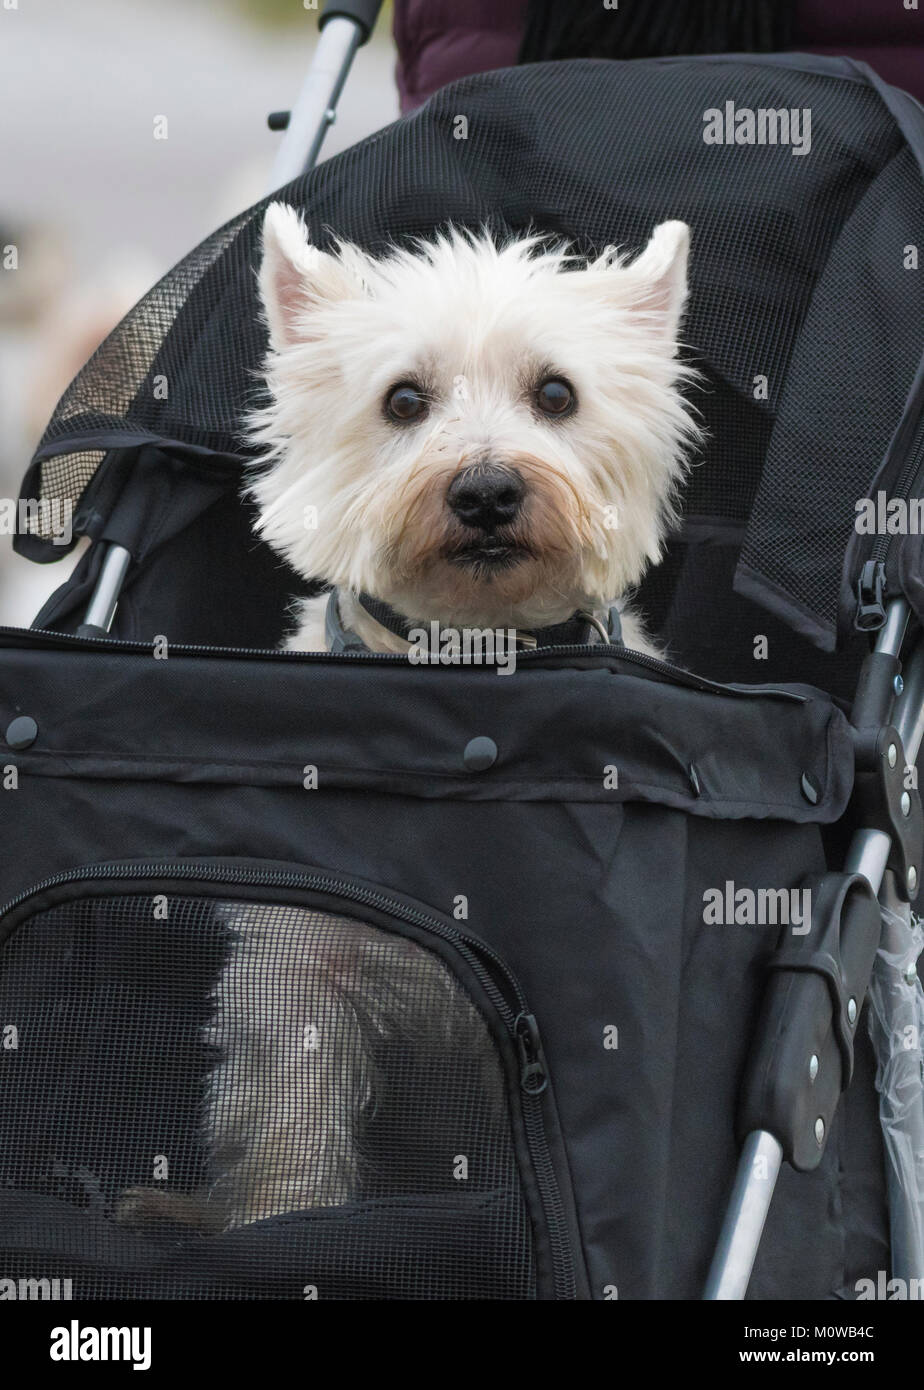 Small cute white dog sitting in a dog carrier pushchair. - Stock Image